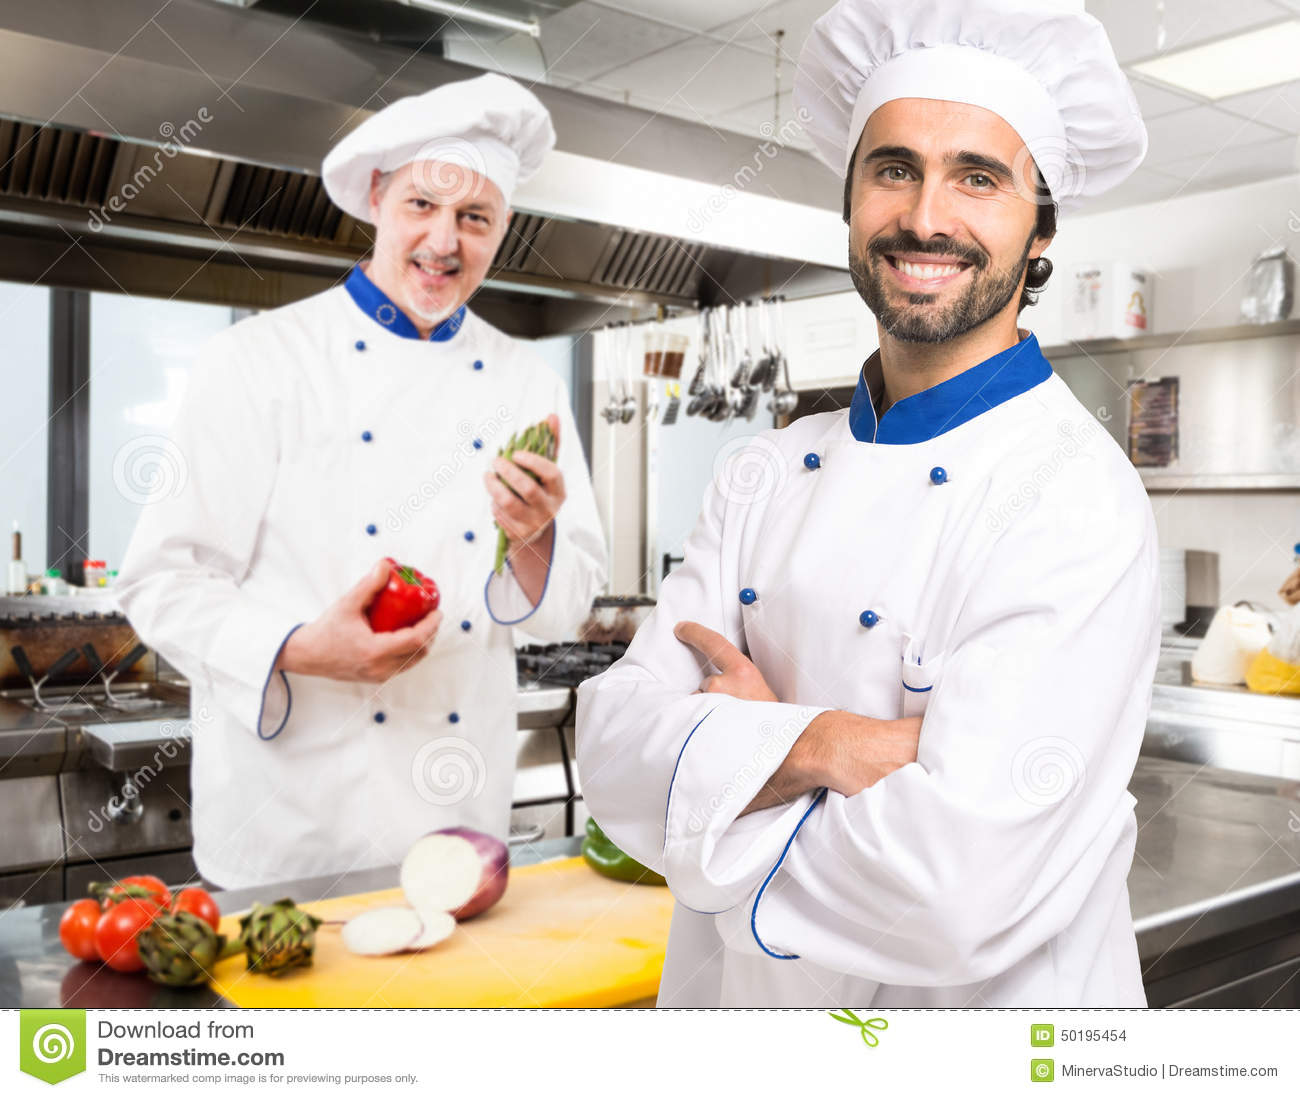 Portrait Of Smiling Chefs In A Kitchen Stock Photo - Image of cook ...